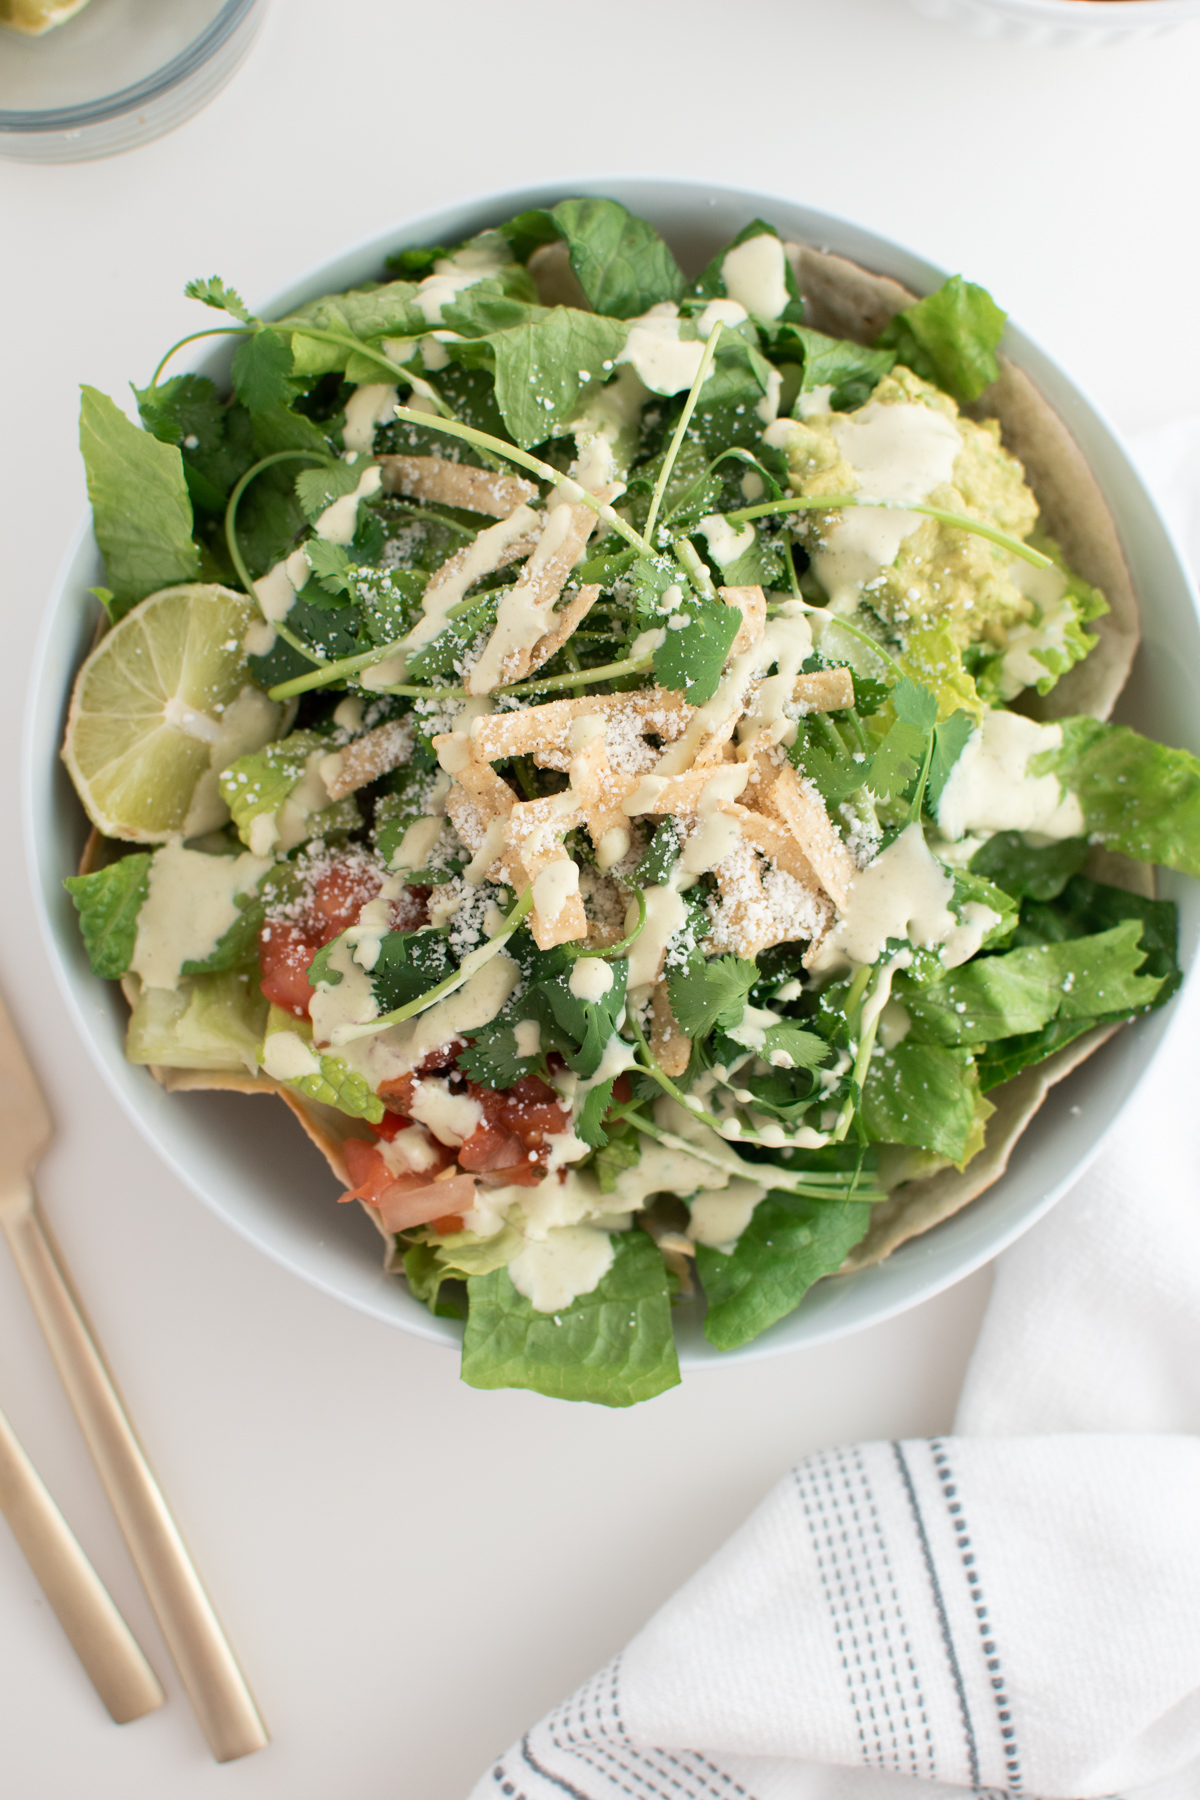 Cafe Rio salad dressing on chicken salad with lettuce, tortilla strips, pico, and guacamole.